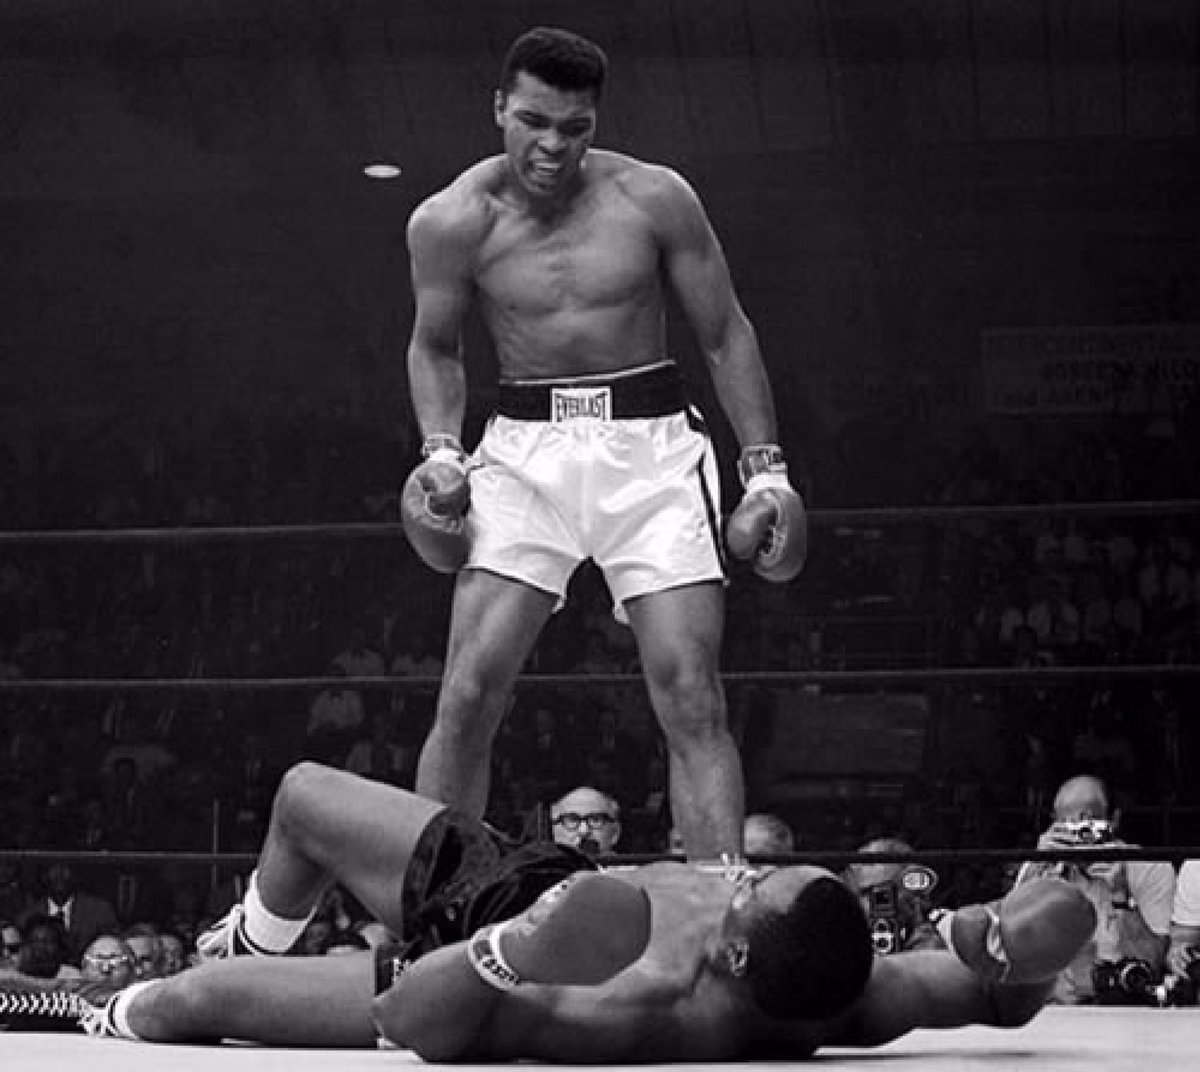 RIP Muhammad Ali boxing has lost a legend https://t.co/jR1WB8W4tH